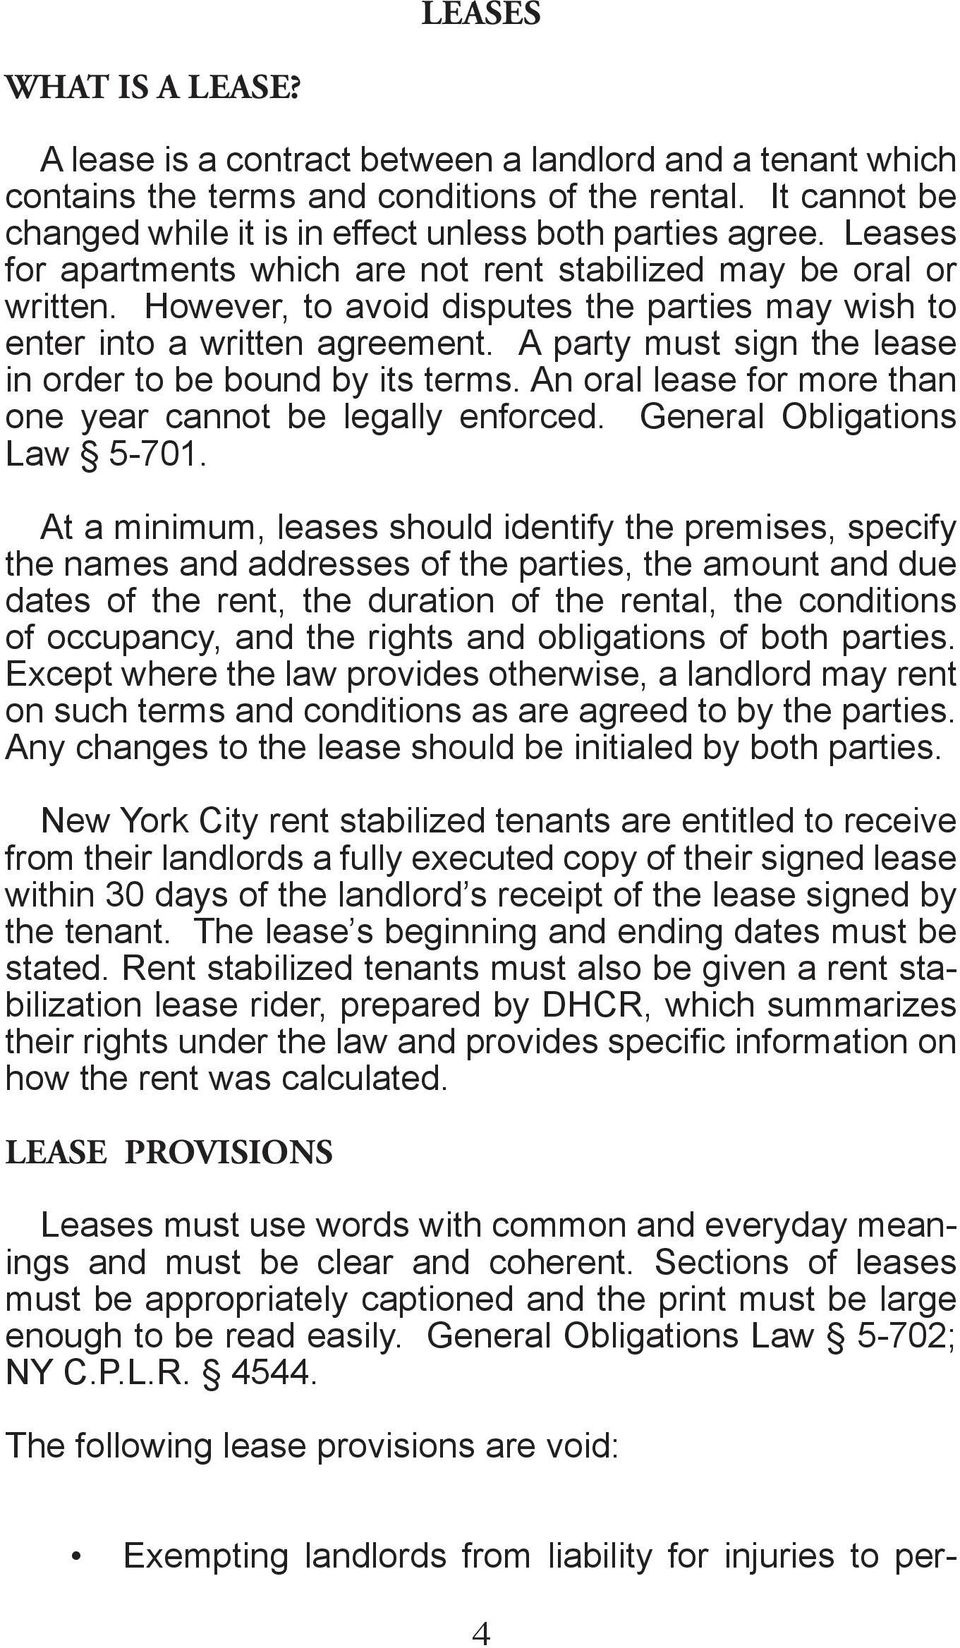 However, to avoid disputes the parties may wish to enter into a written agreement. A party must sign the lease in order to be bound by its terms.